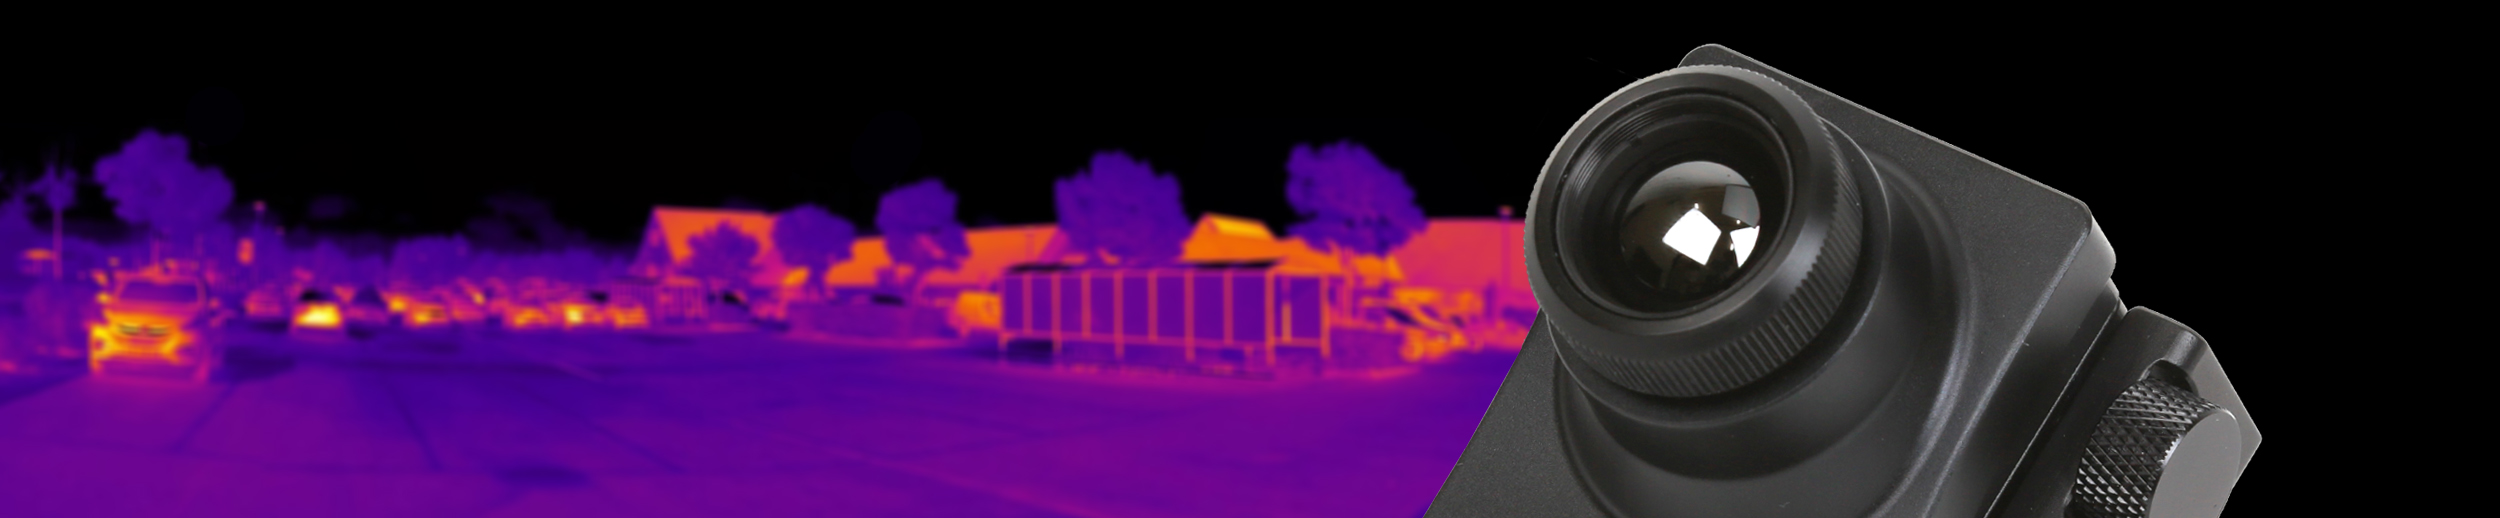 Opgal Thermal Cameras for Android